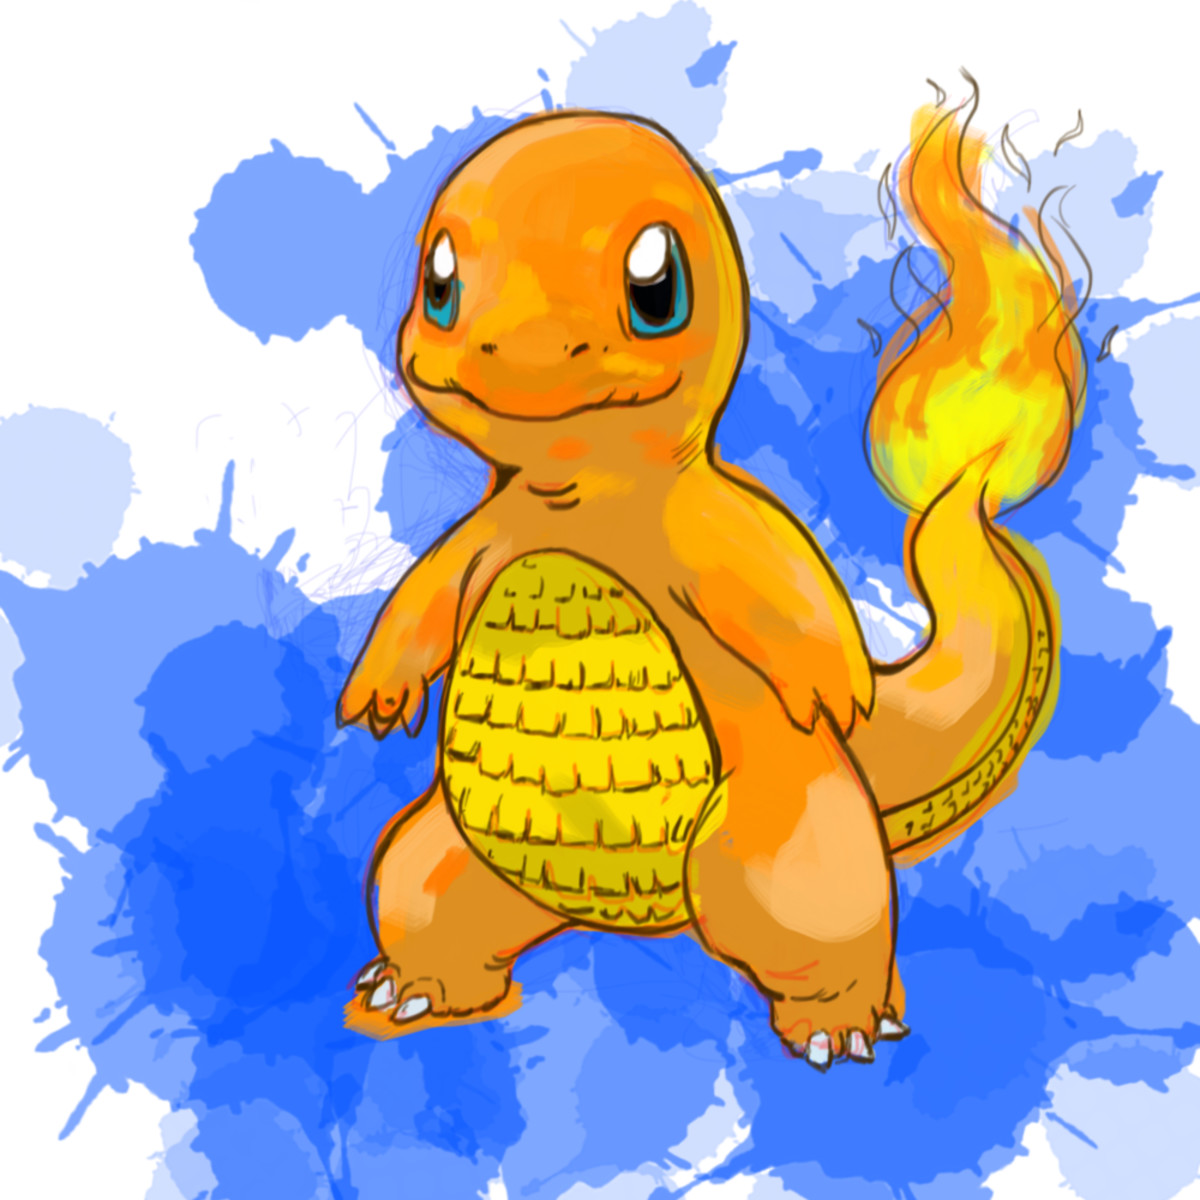 2 4 20 digital drawing 25 pokemon charmander 1 t2gkip